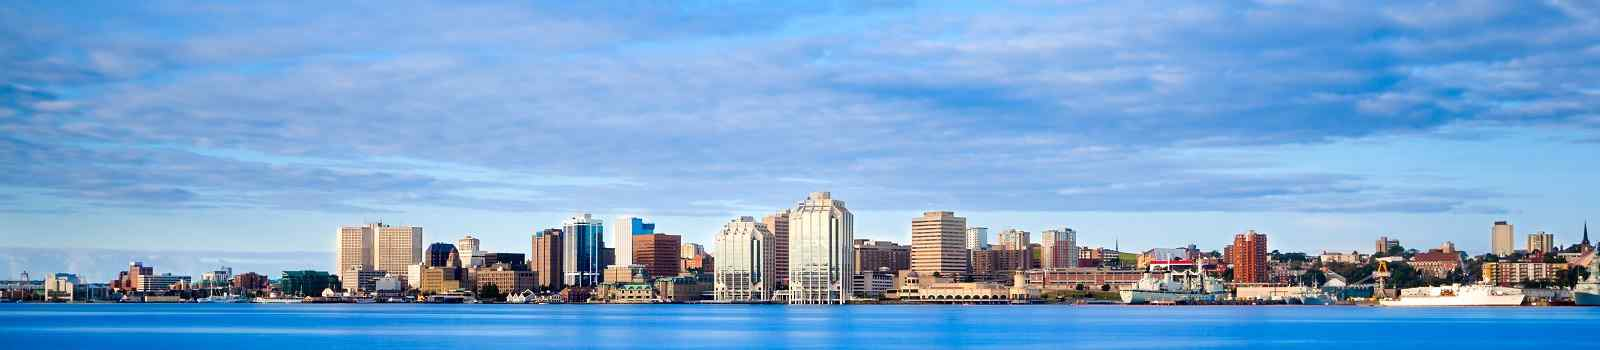 HALIFAX-EXP -View of downtown Halifax shutterstock 283122272